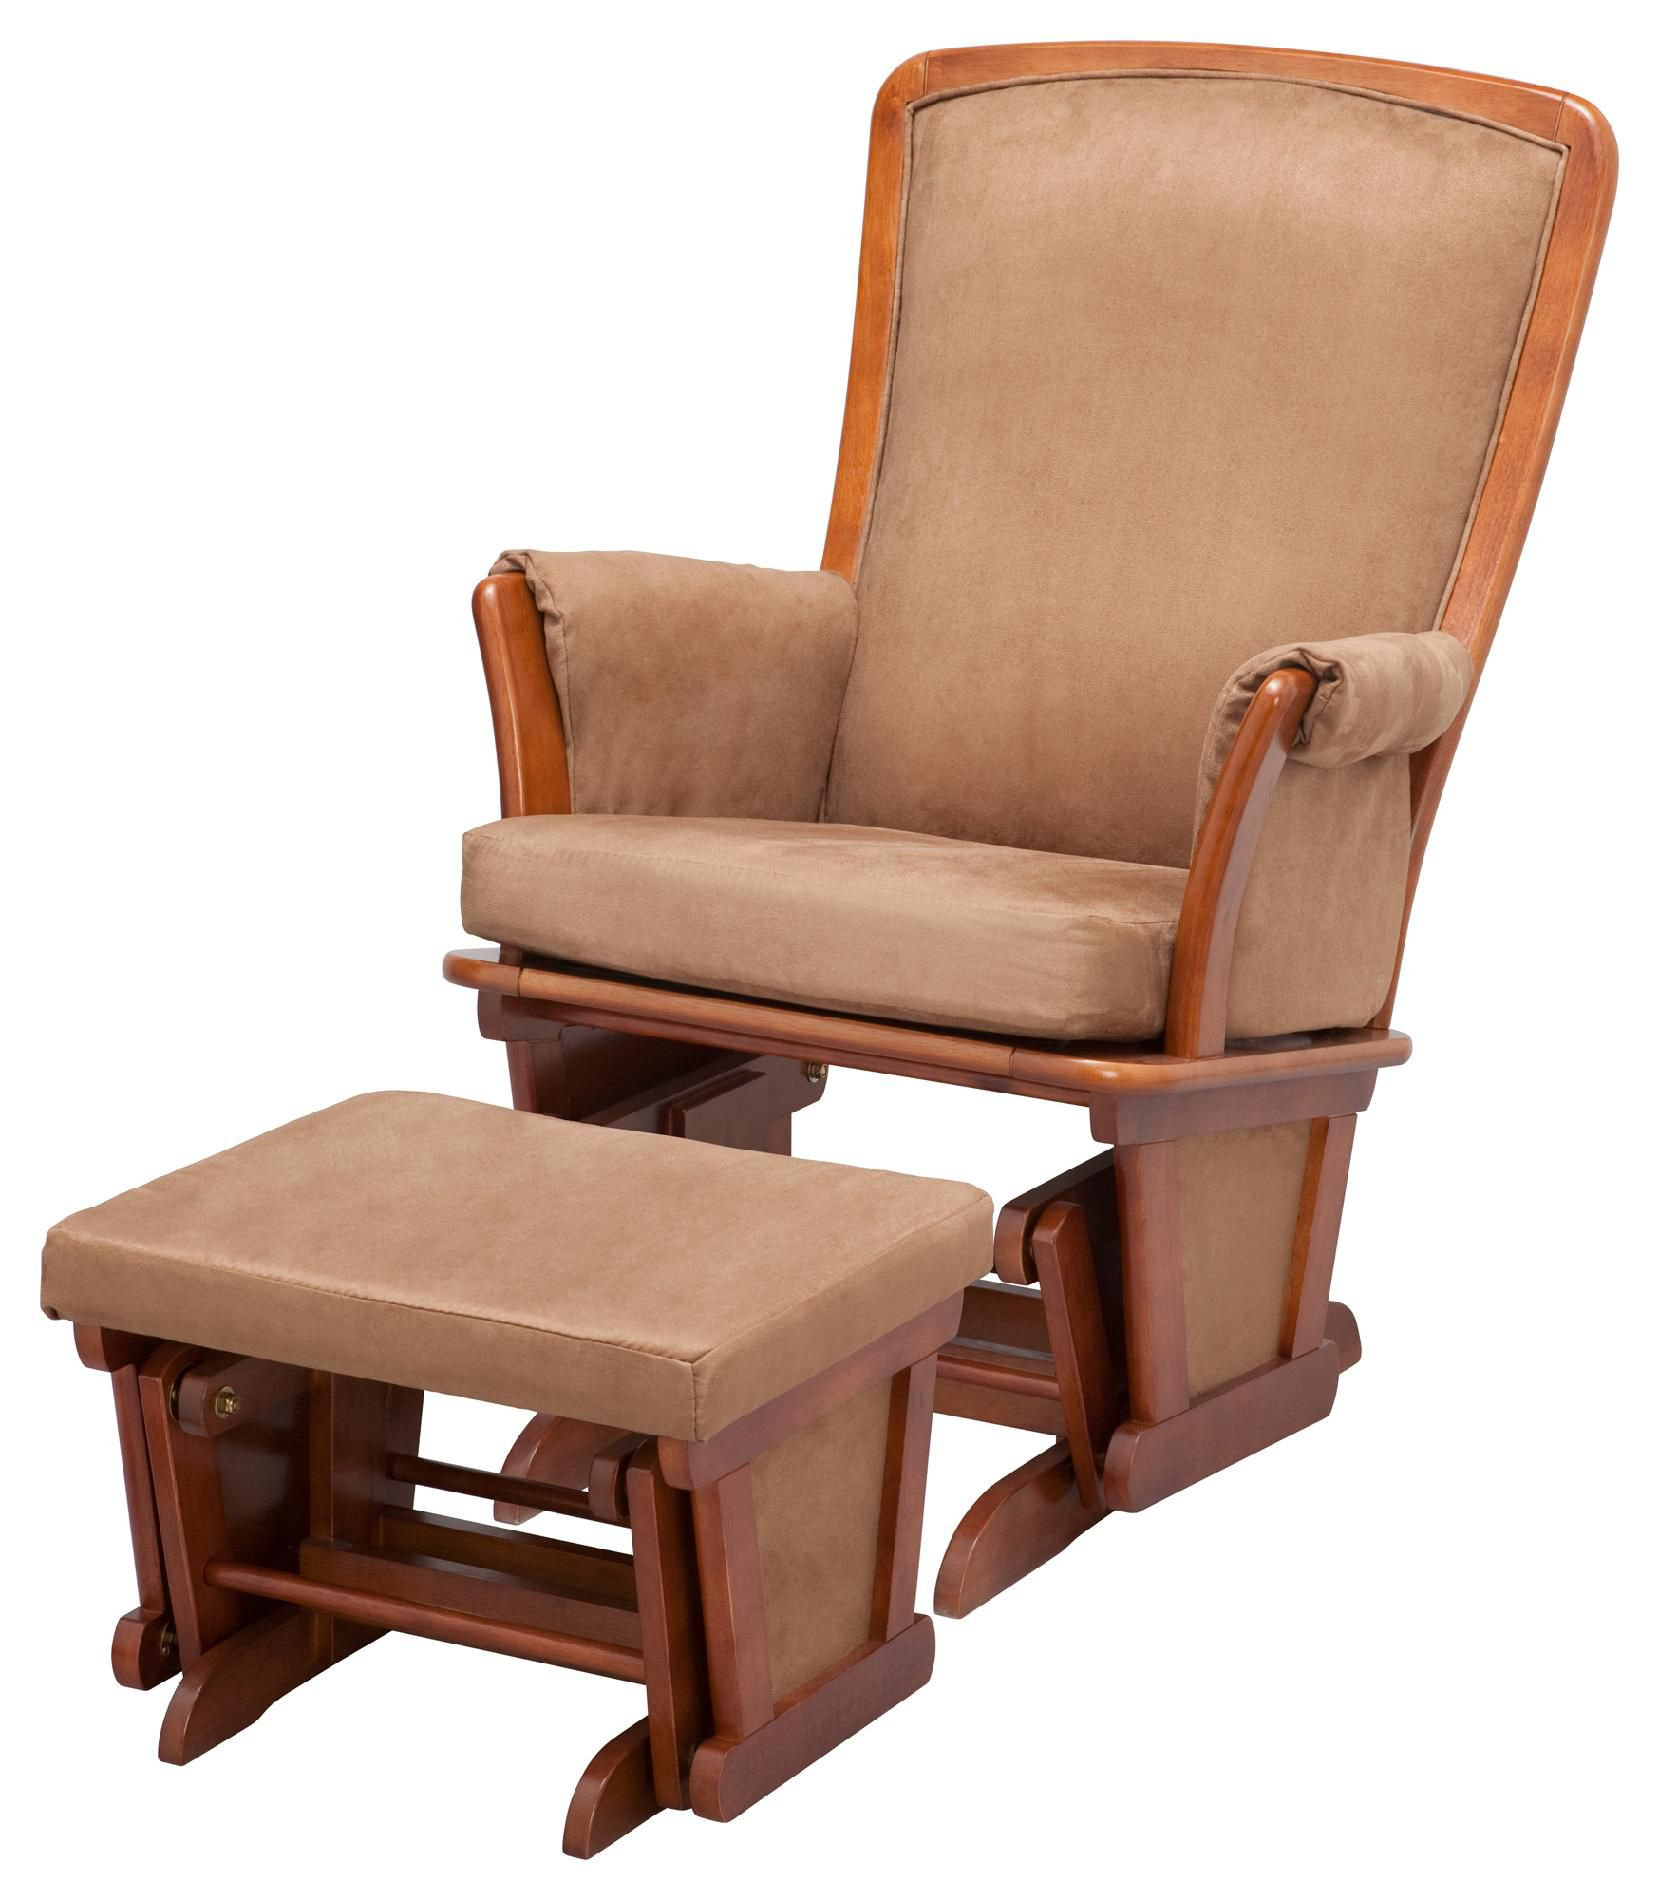 childcare glider rocker chair ottoman plastic outdoor chairs menards delta children upholstered and spice